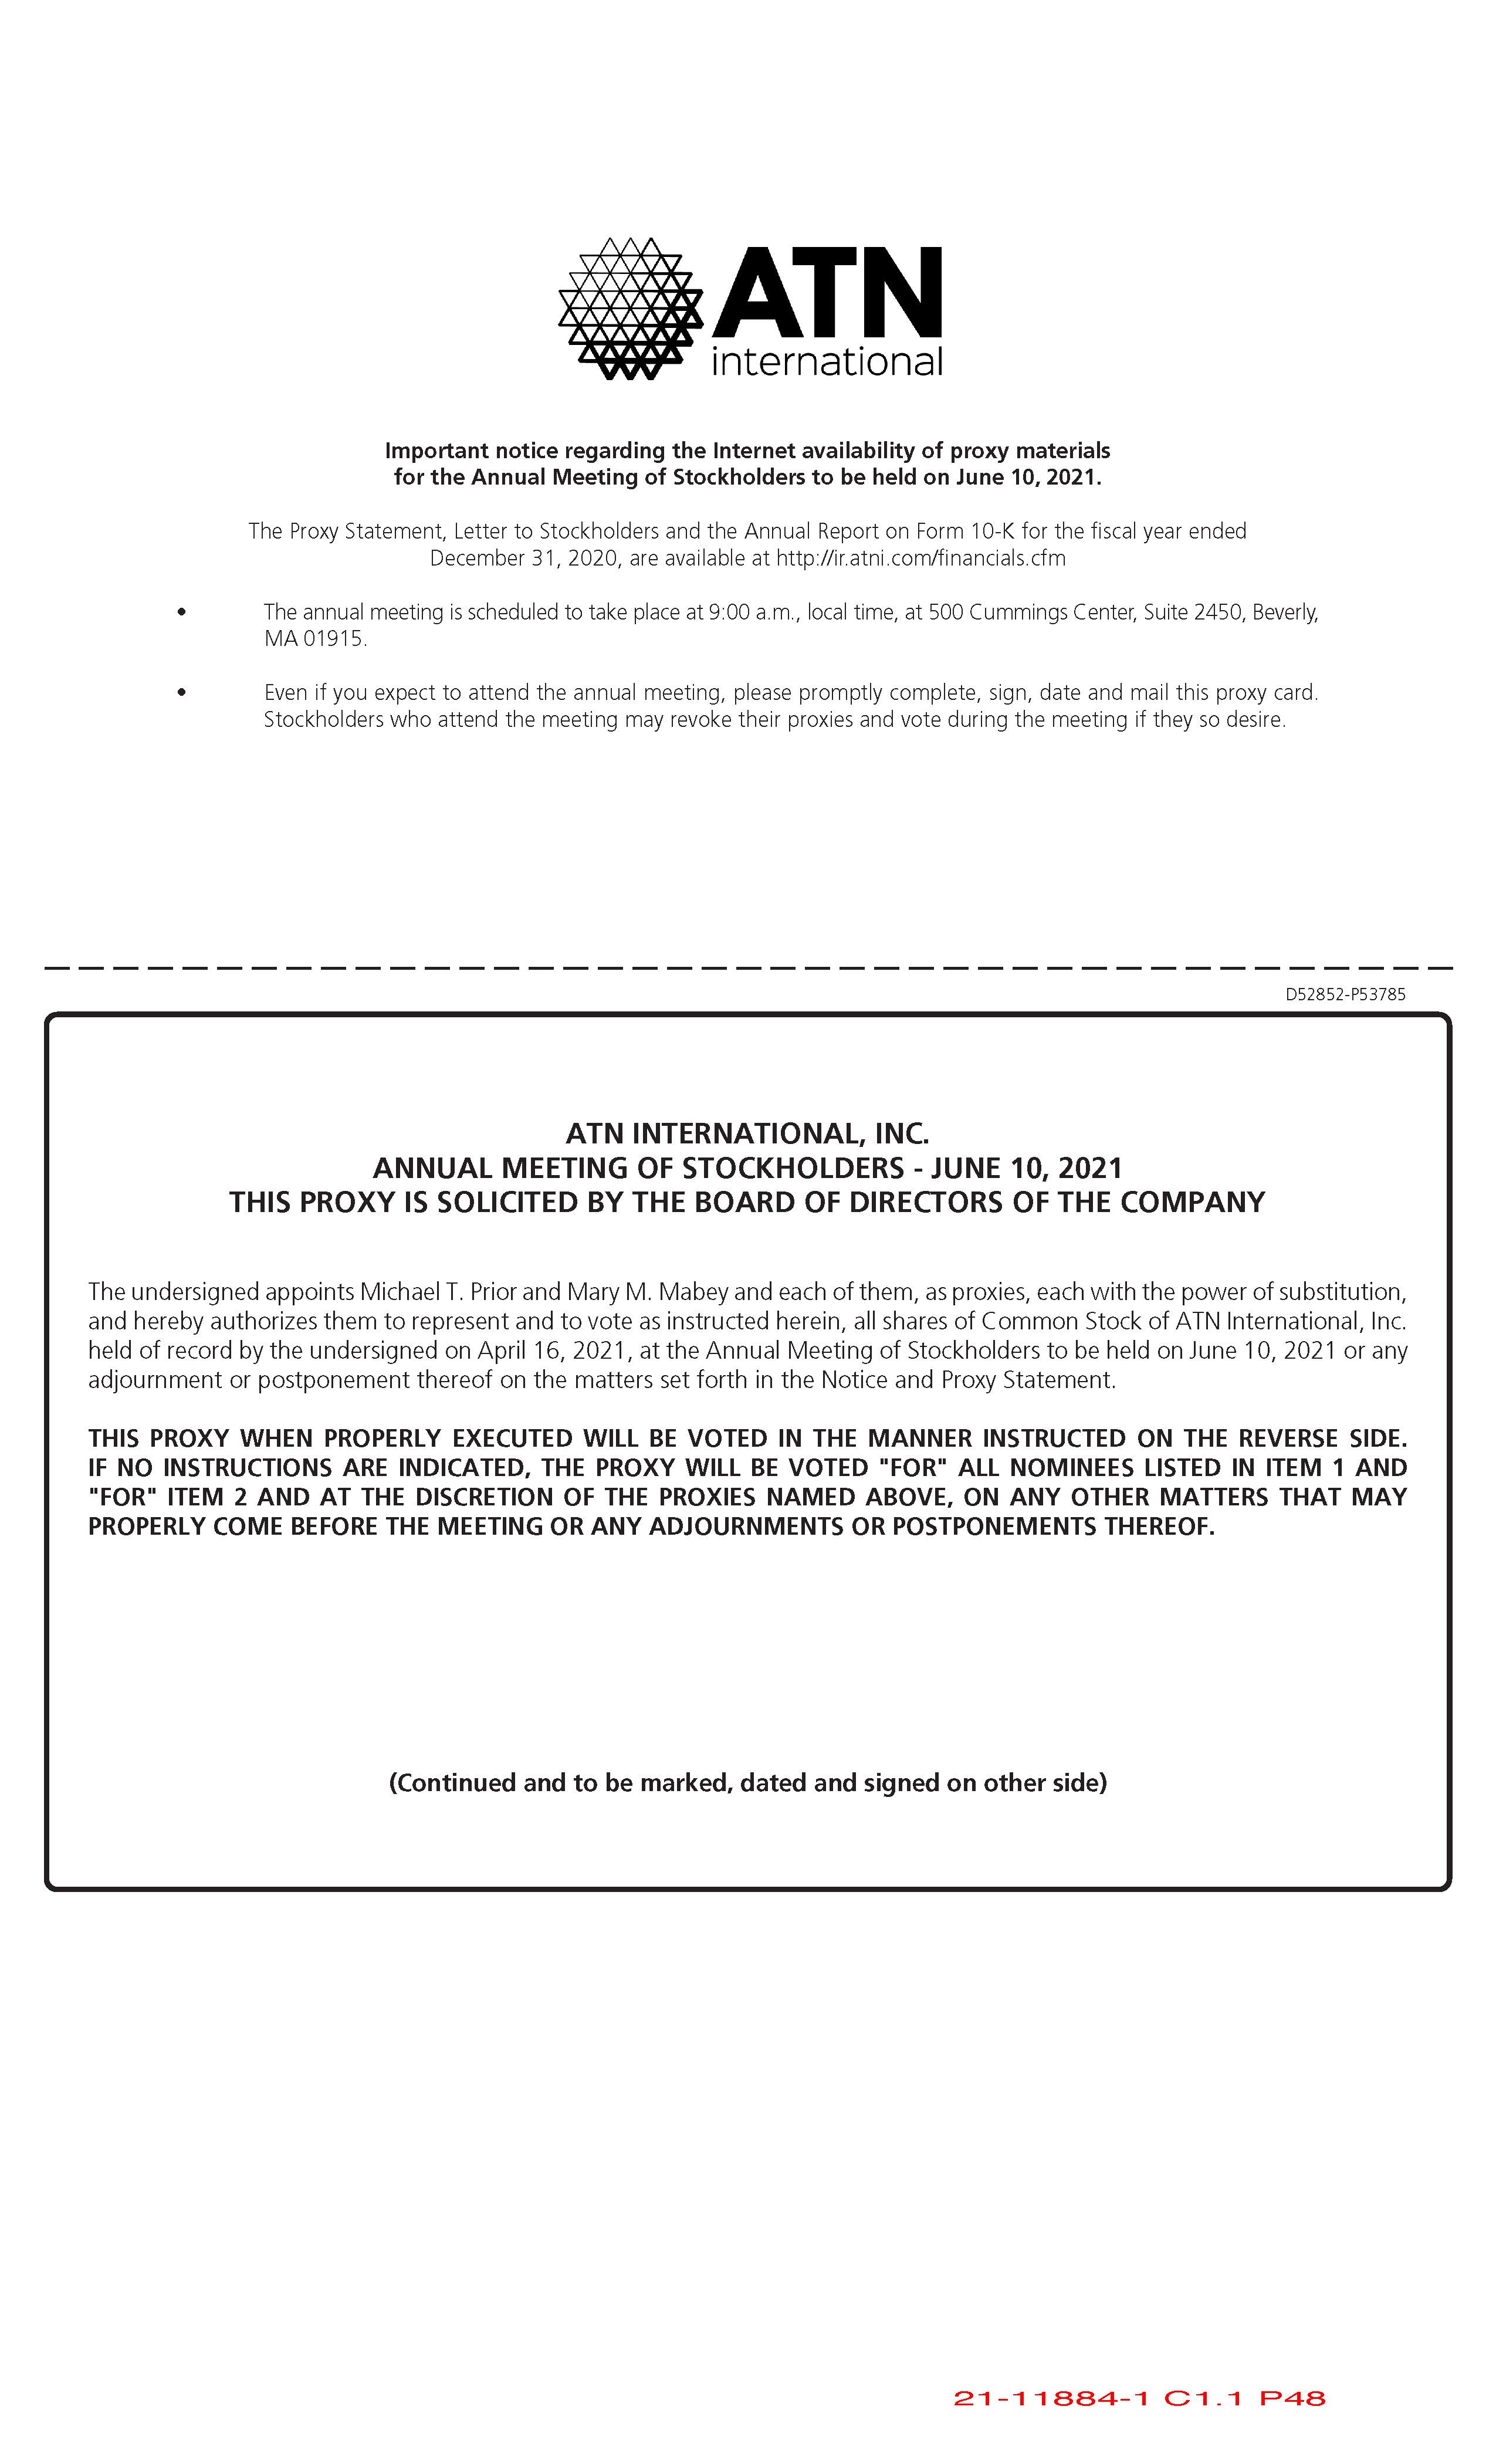 [MISSING IMAGE: tm2111884d1_proxy-page2.jpg]